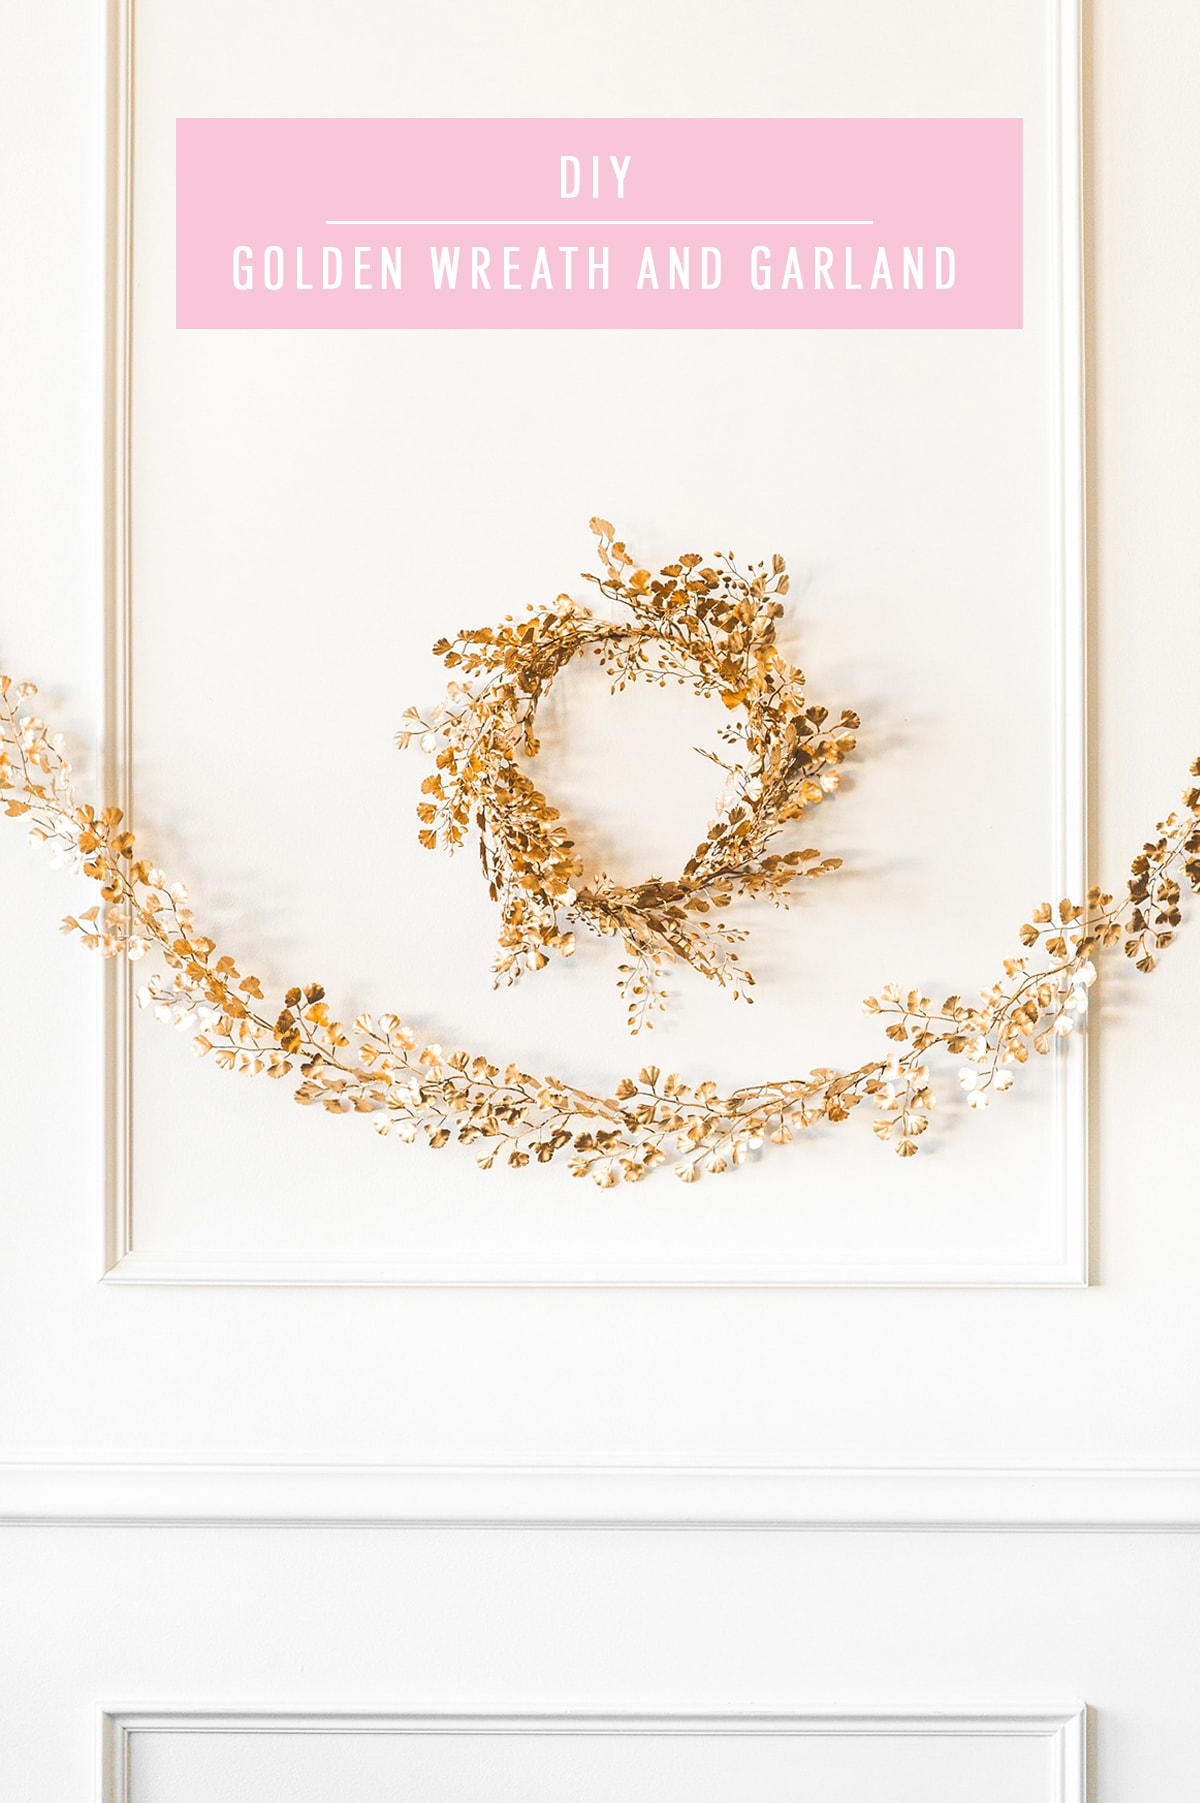 DIY Golden Wreath and Garland by top Houston lifestyle blogger Ashley Rose of Sugar and Cloth